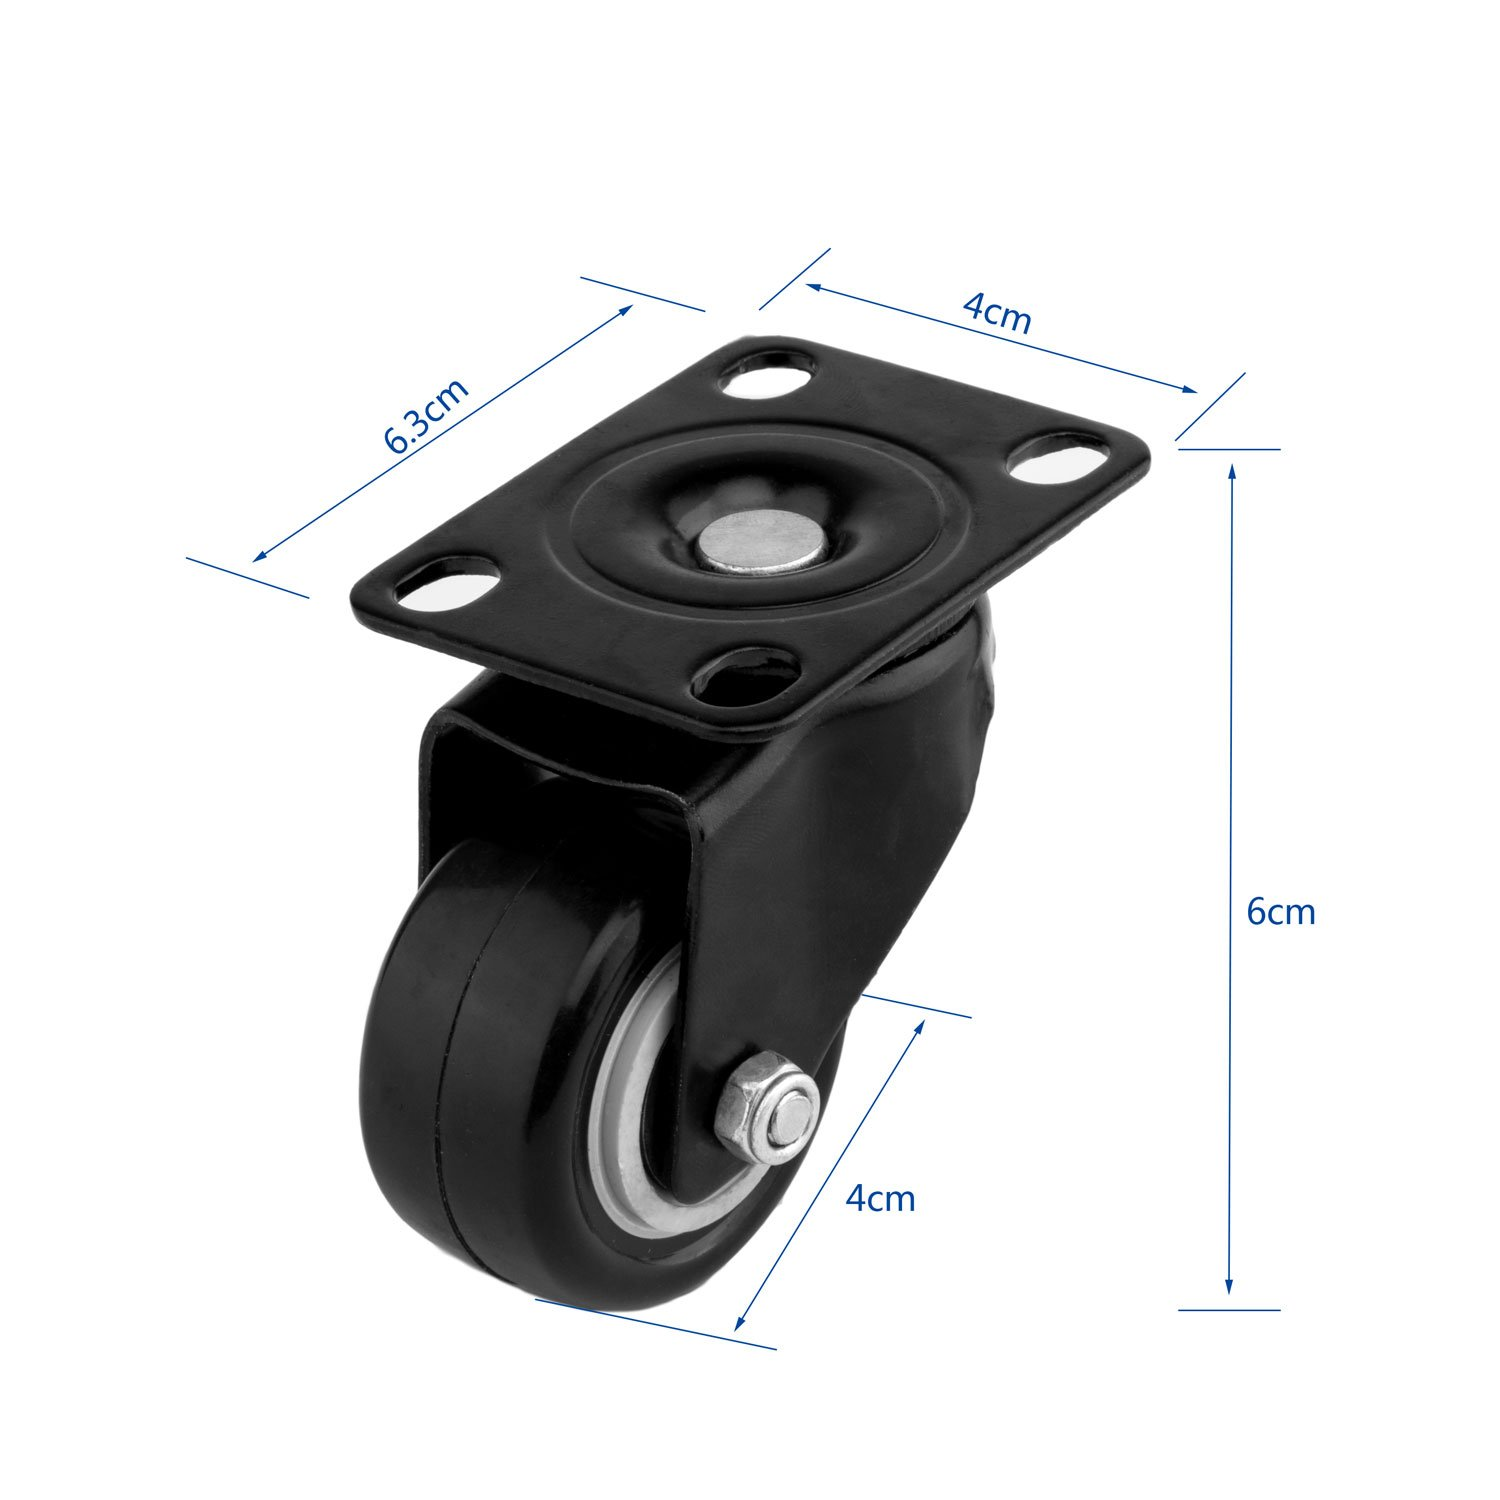 ULIFESTAR 4 PCS 1.5 inch Heavy Duty Caster Wheels Polyurethane PU Rubber Swivel Casters with Top Plate & Strong Bearing Total 400lb Quite Mute Non-Marking Locking Stem Casters Black (1.5'') by Ulifestar (Image #3)